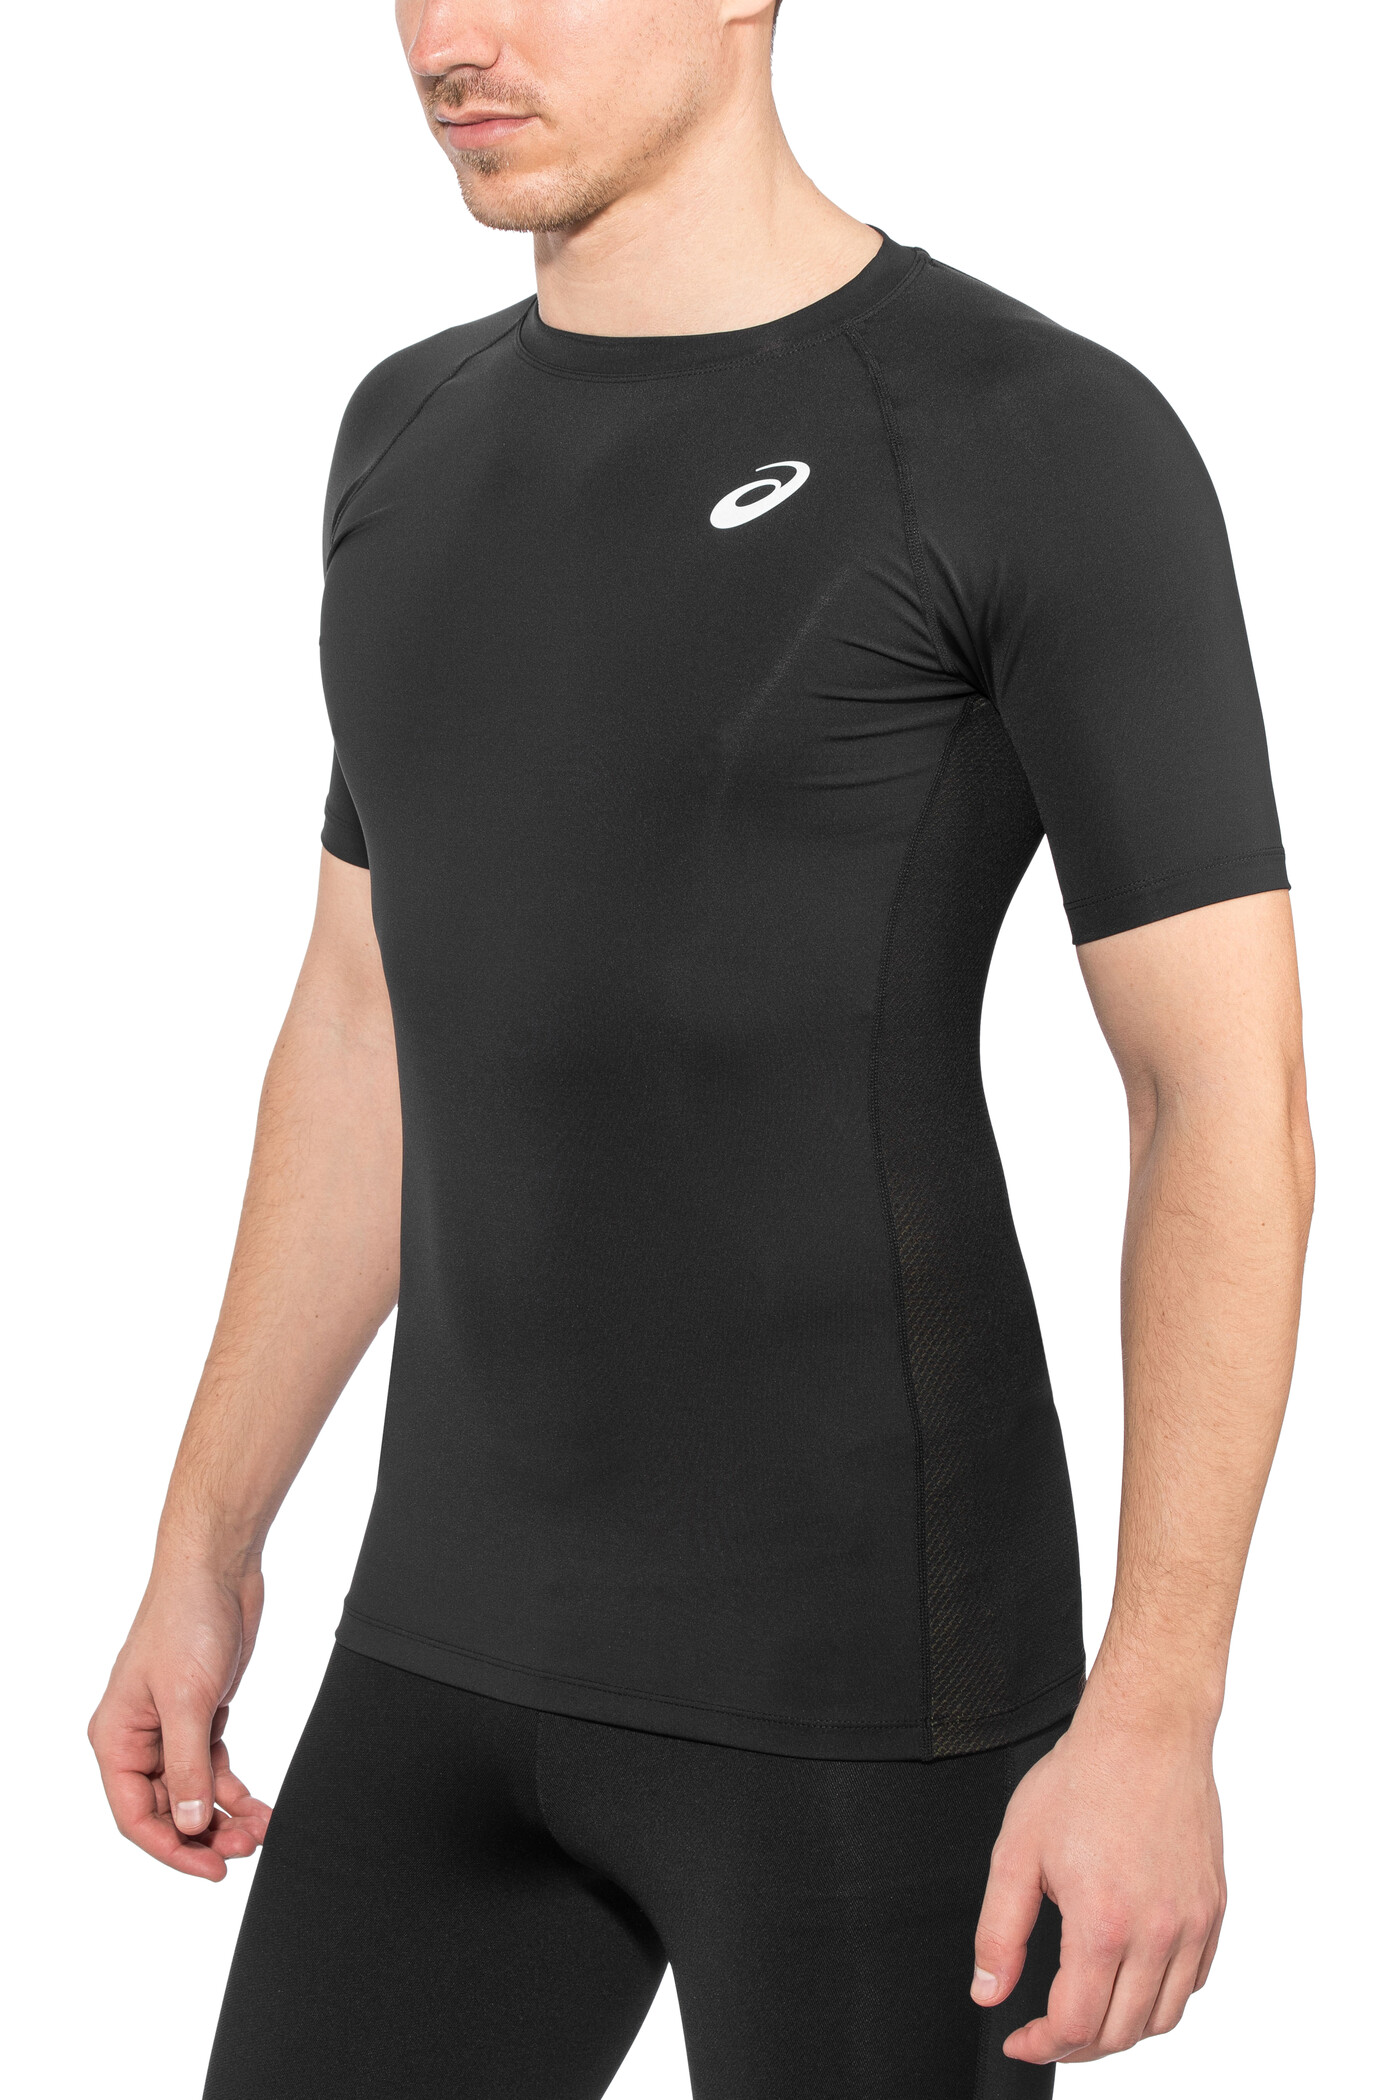 asics Base Layer Top Herrer, performance black (2019) | Base layers